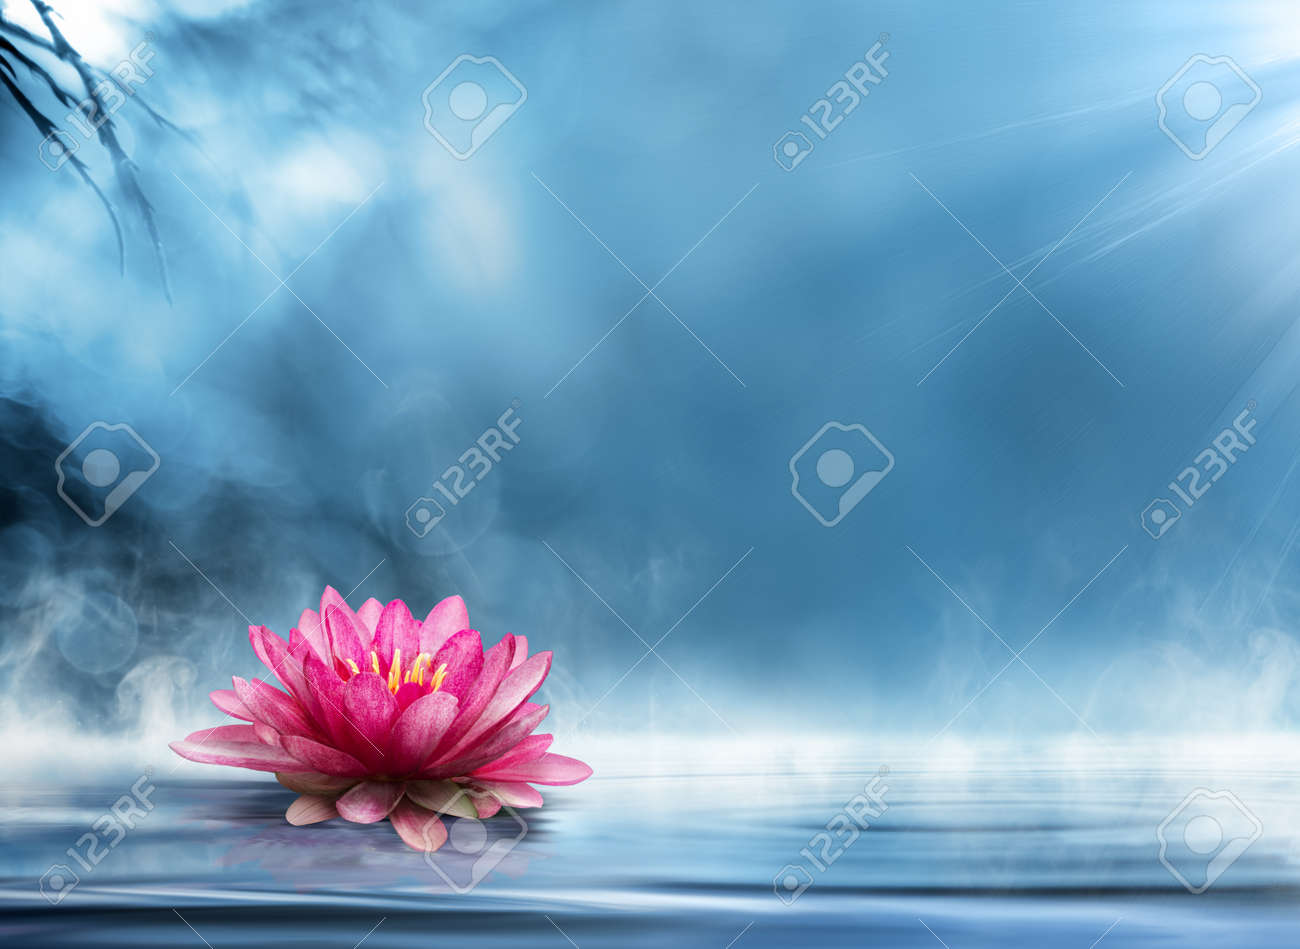 Peaceful Images